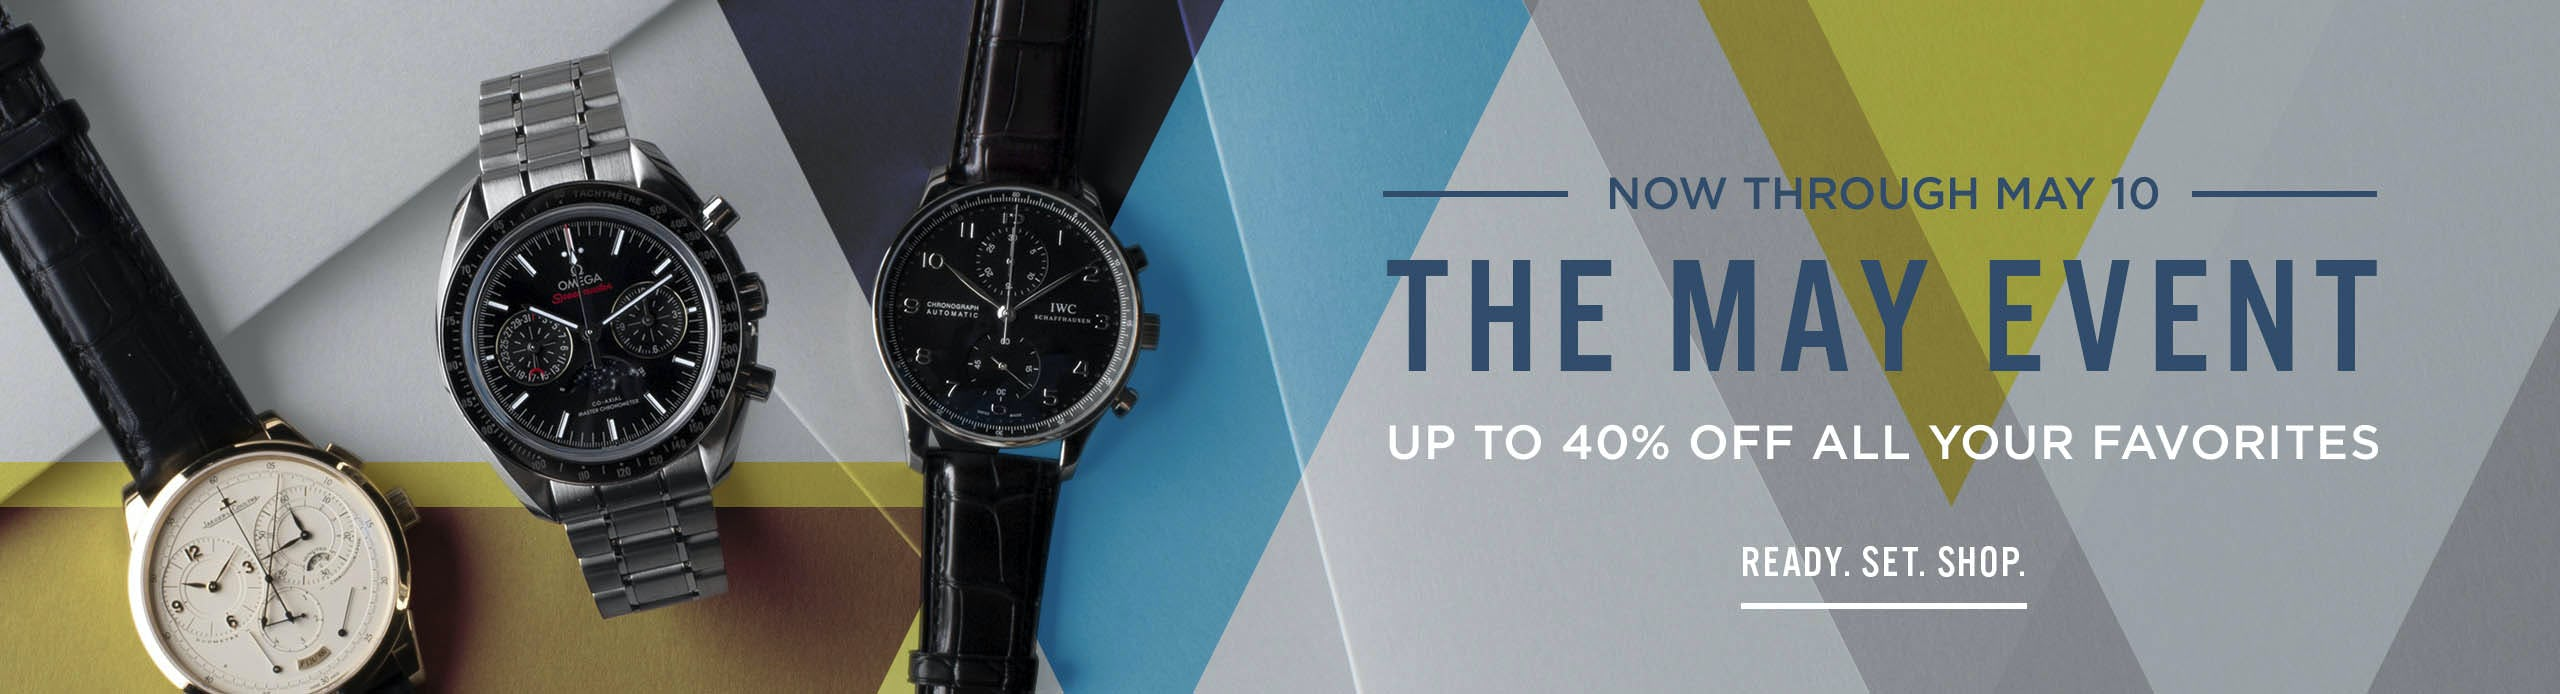 THE MAY EVENT: Shop Over 700 Pre-Owned Watches